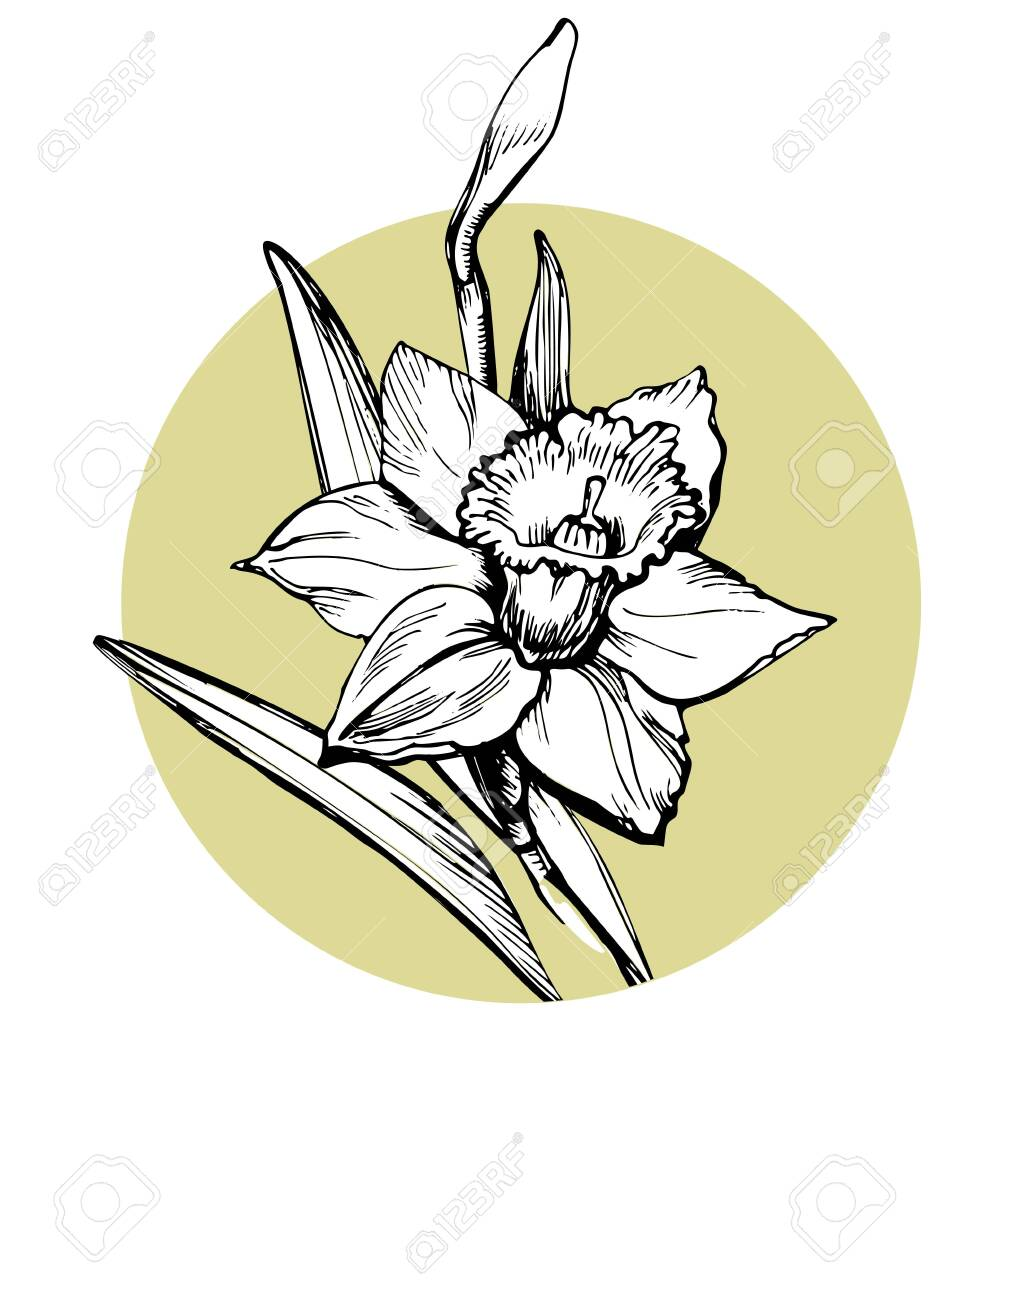 Vector isolated element for design with hand drawn flower Daffodil, Narcissus on circle form background. Can be used as floral design of textile print, postcard, greeting card, cover, botanical page. - 131604301